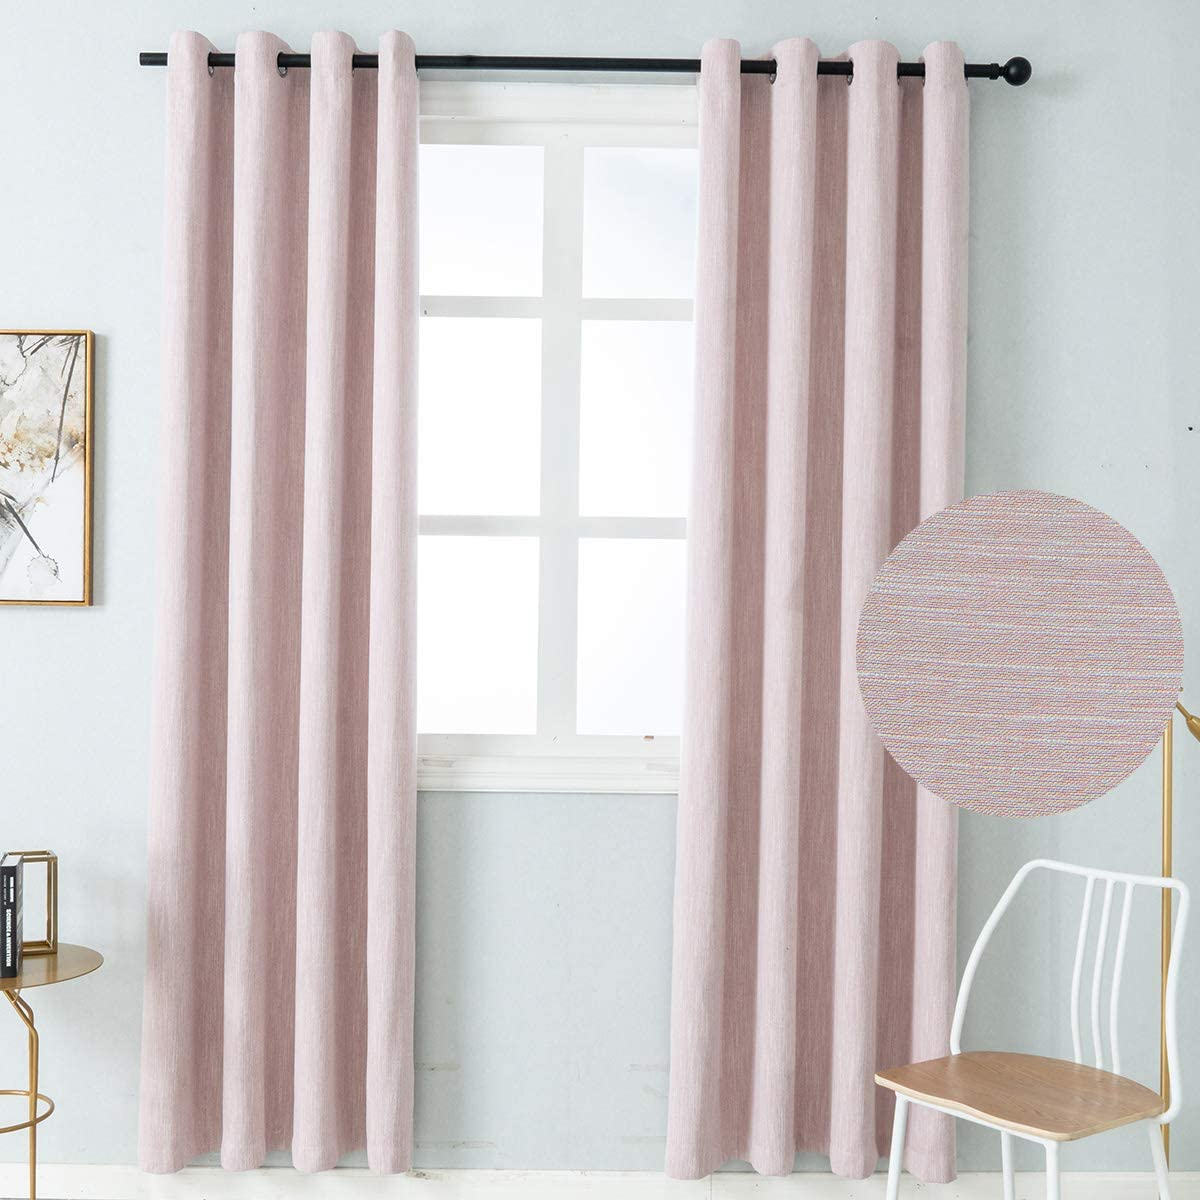 Colokey Elegant Cotton Blackout Curtains Thermal Insulated Single Panel for Bedroom Living Room,Pink,100×84-inch,1 Panel